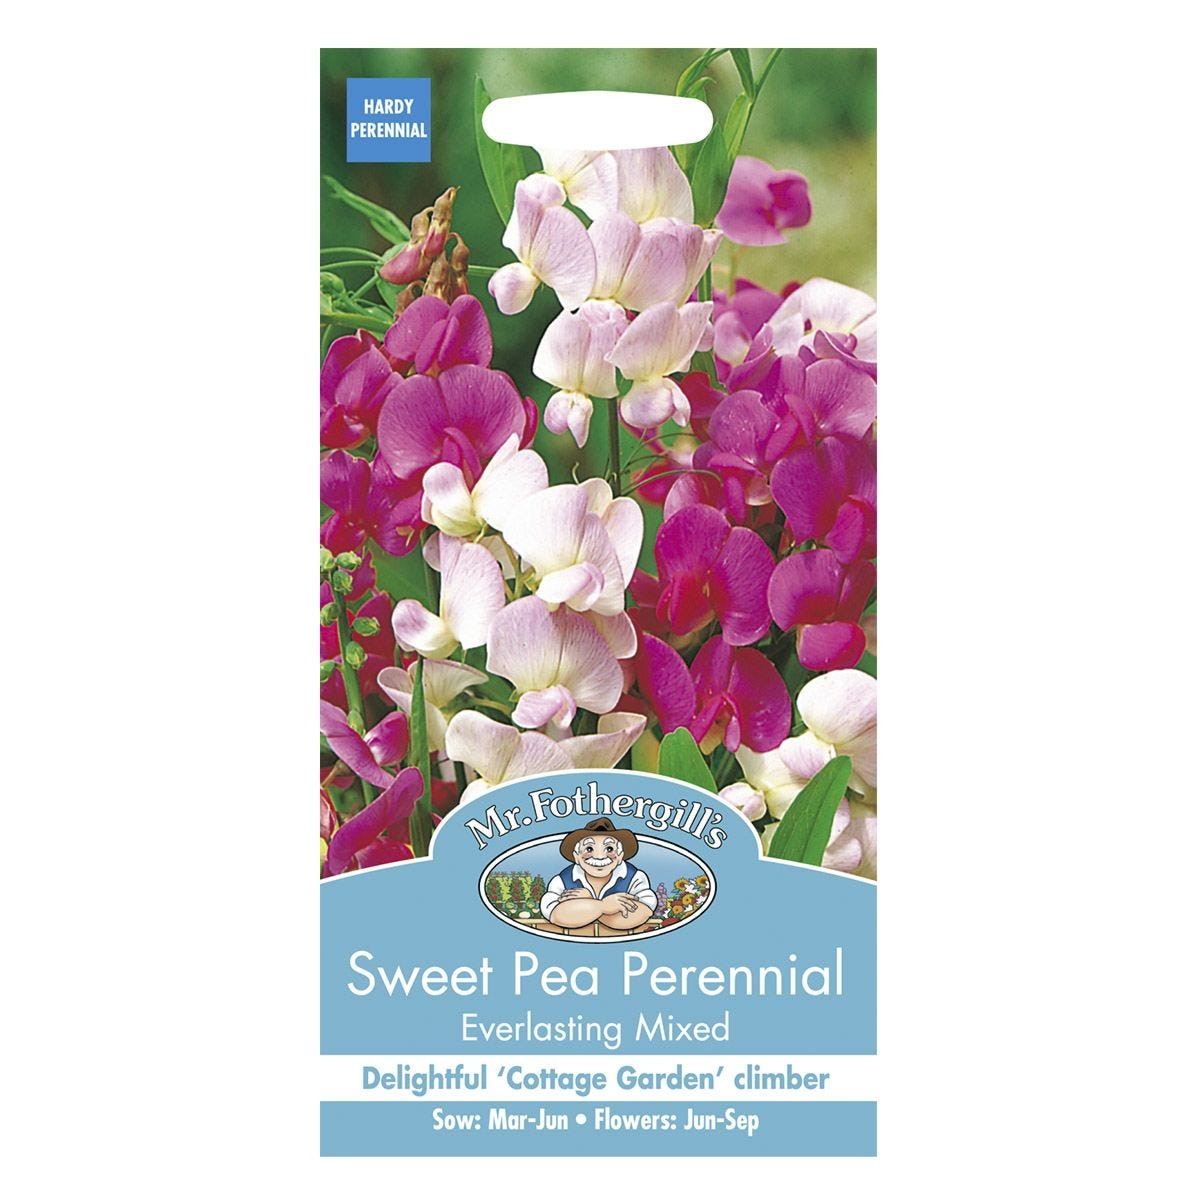 Mr Fothergill's Sweet Pea Perennial Everlasting Mixed Seeds